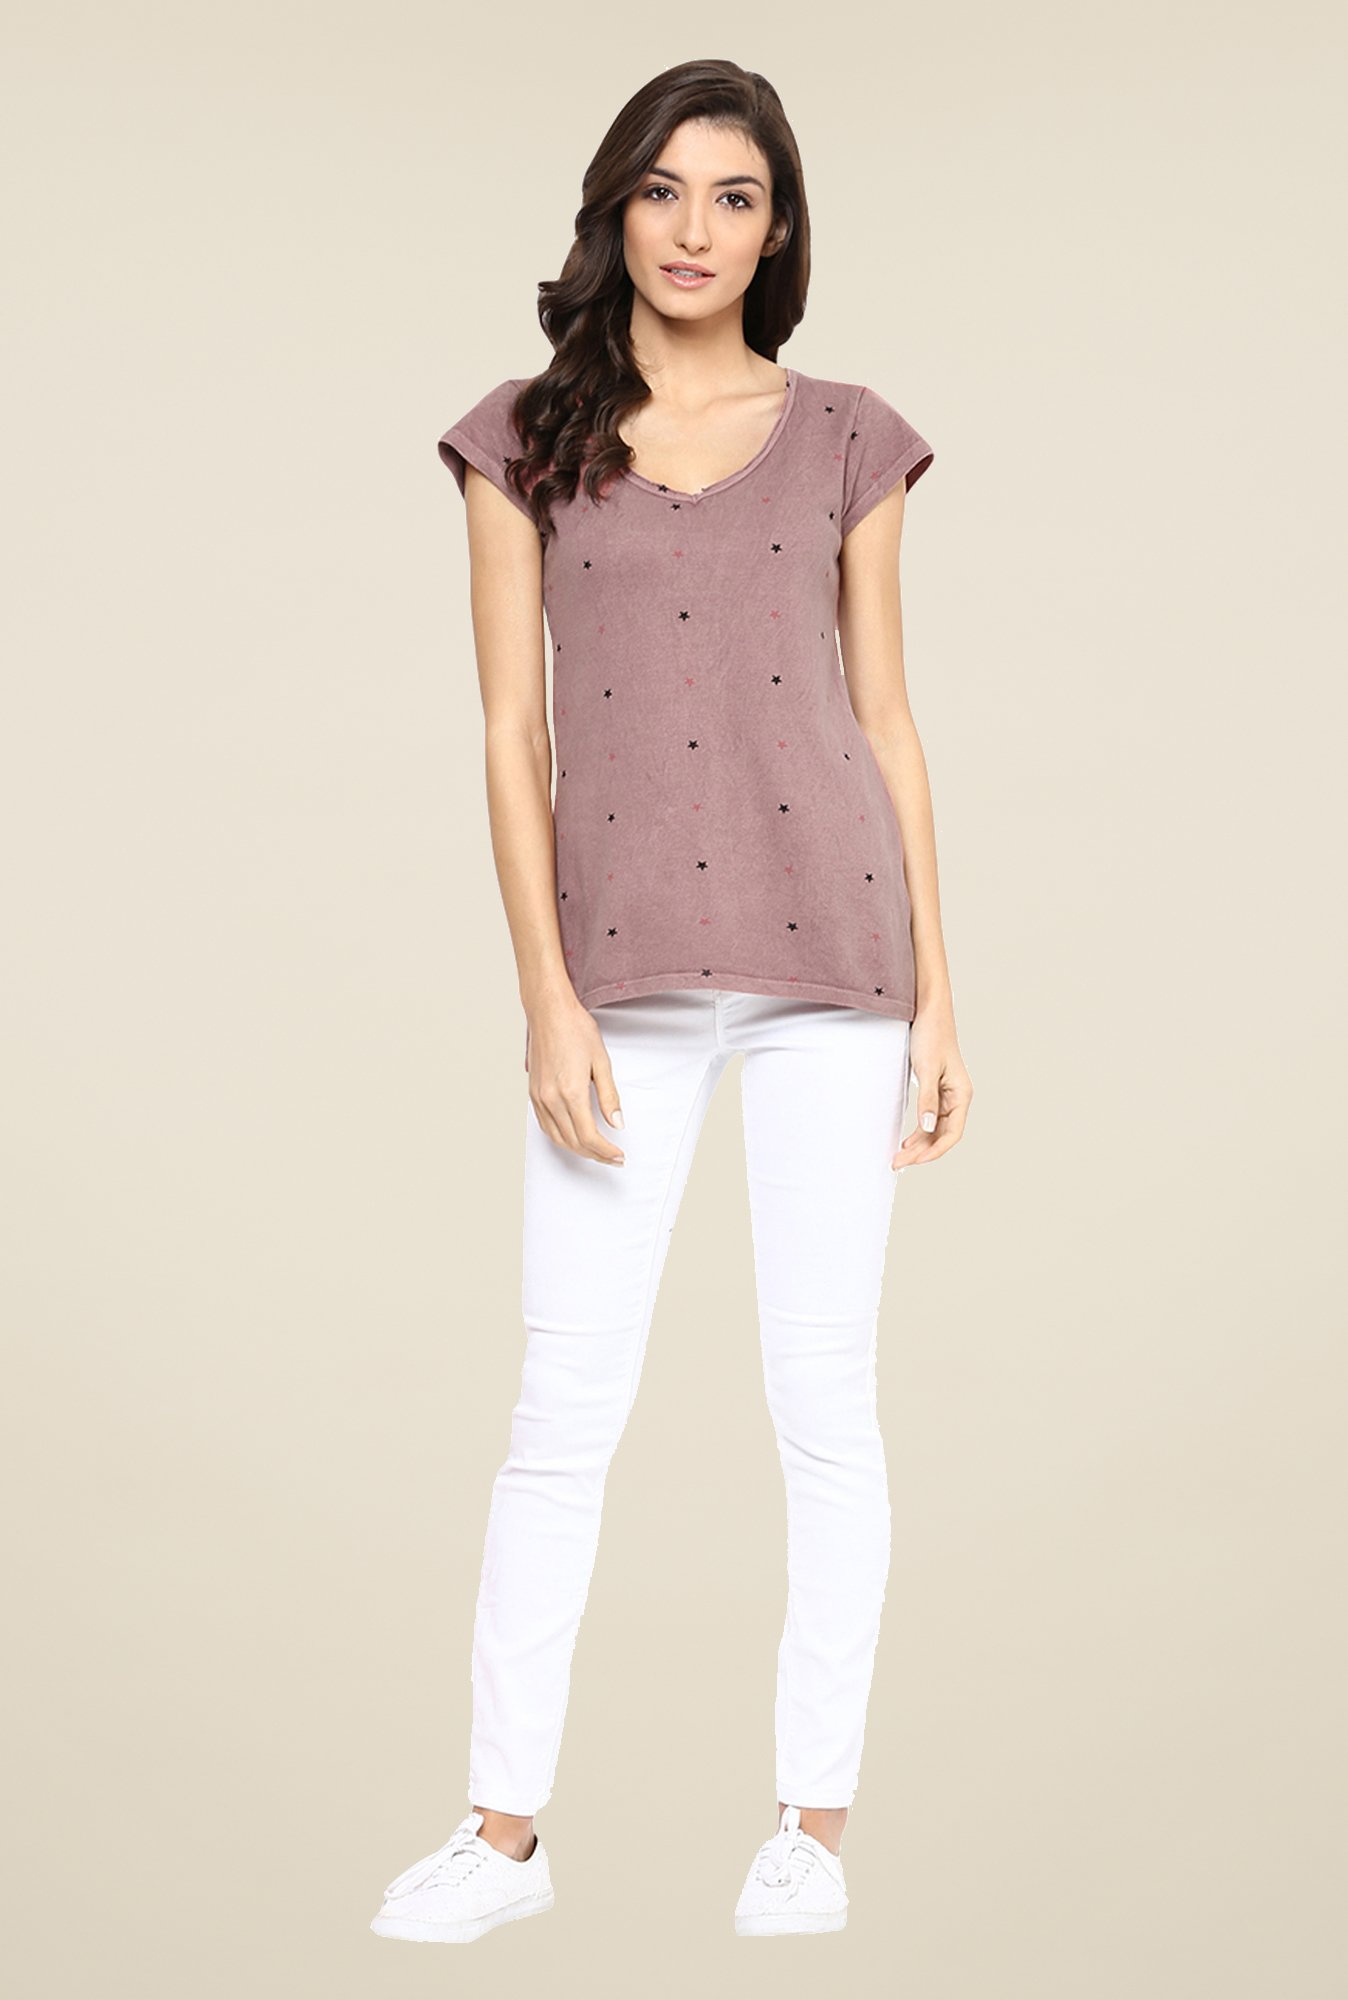 Yepme Melinda Brown Star Print Top